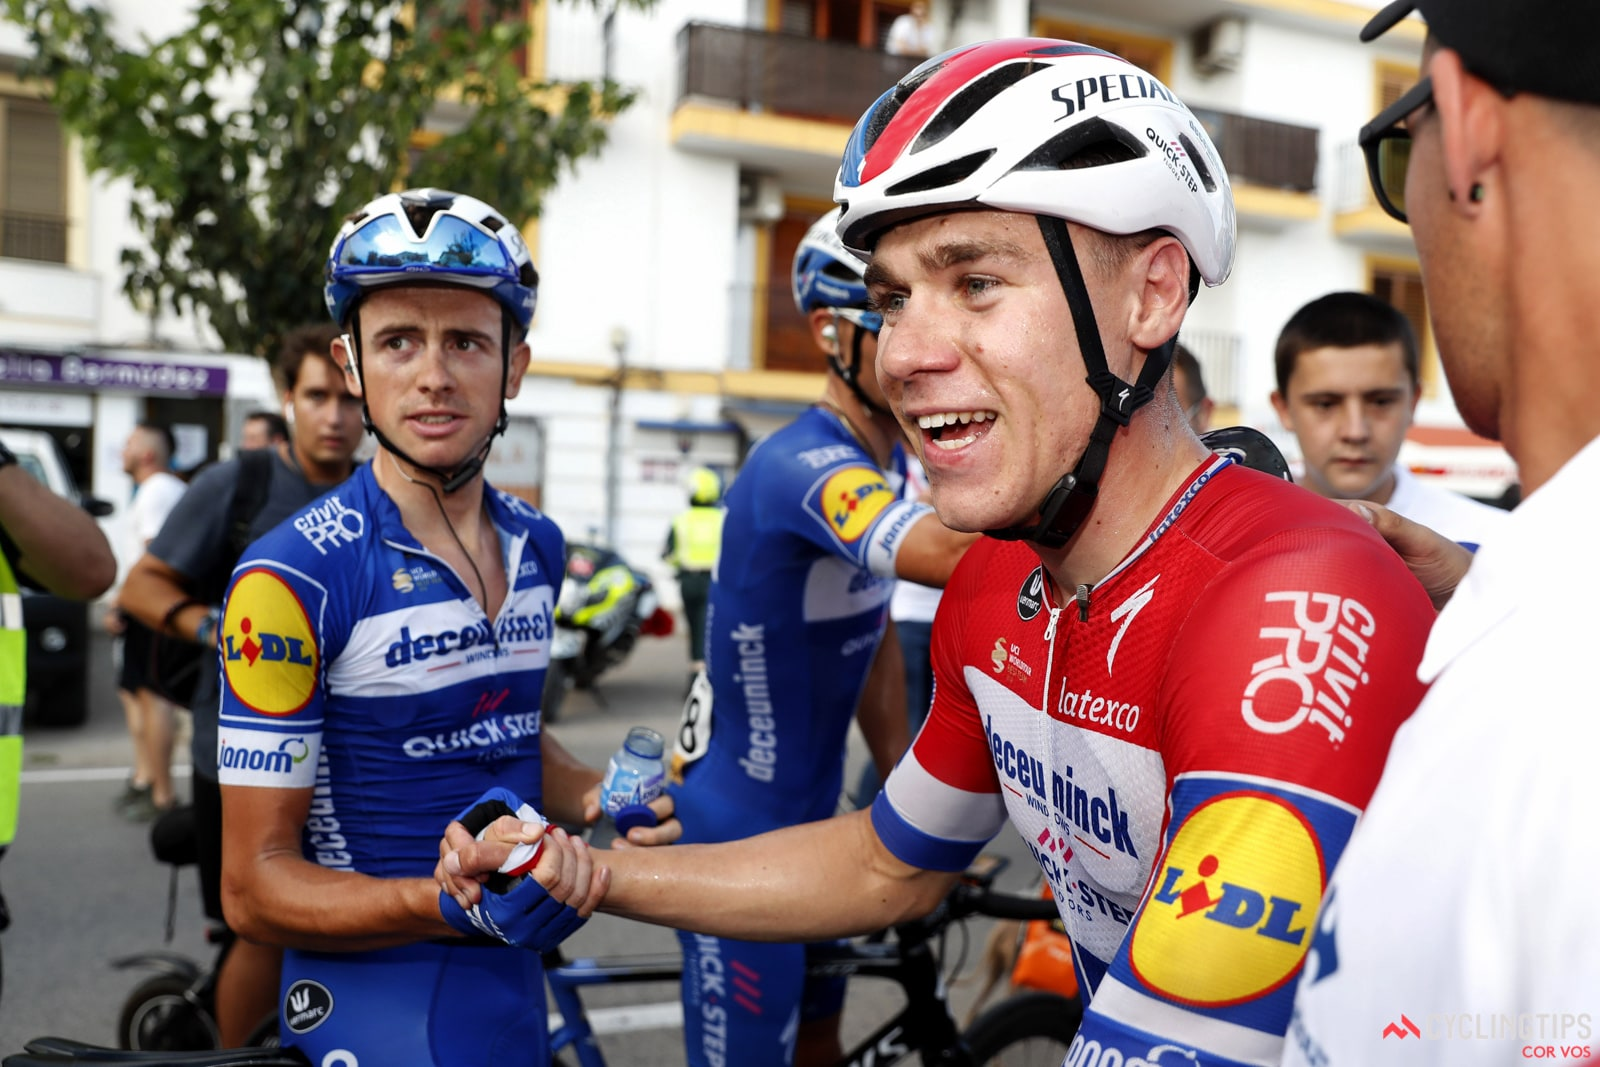 Fabio Jakobsen tells the story of his crash and its aftermath